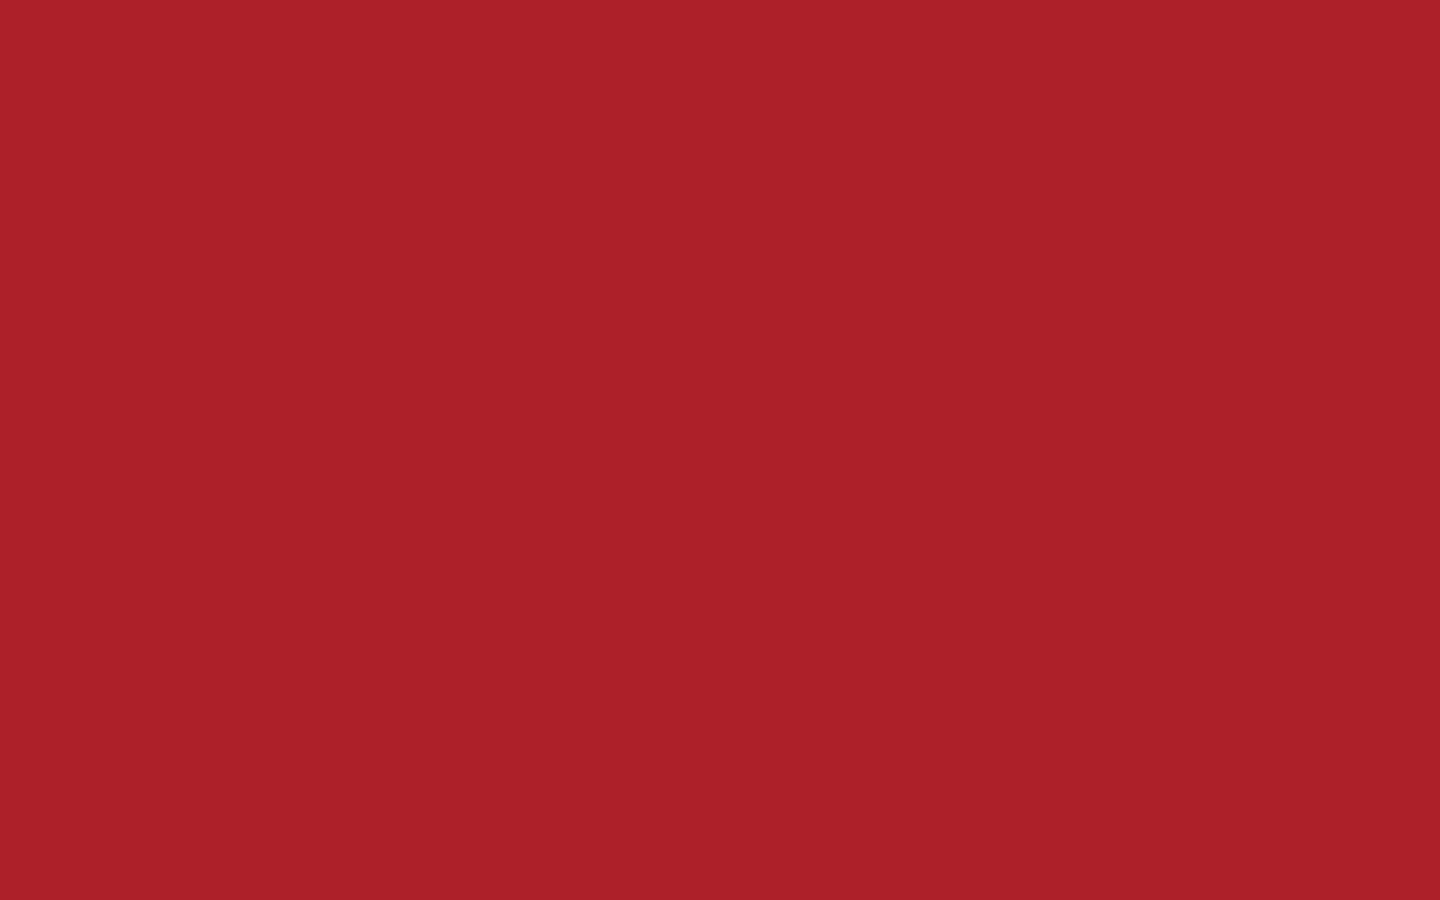 1440x900 Upsdell Red Solid Color Background